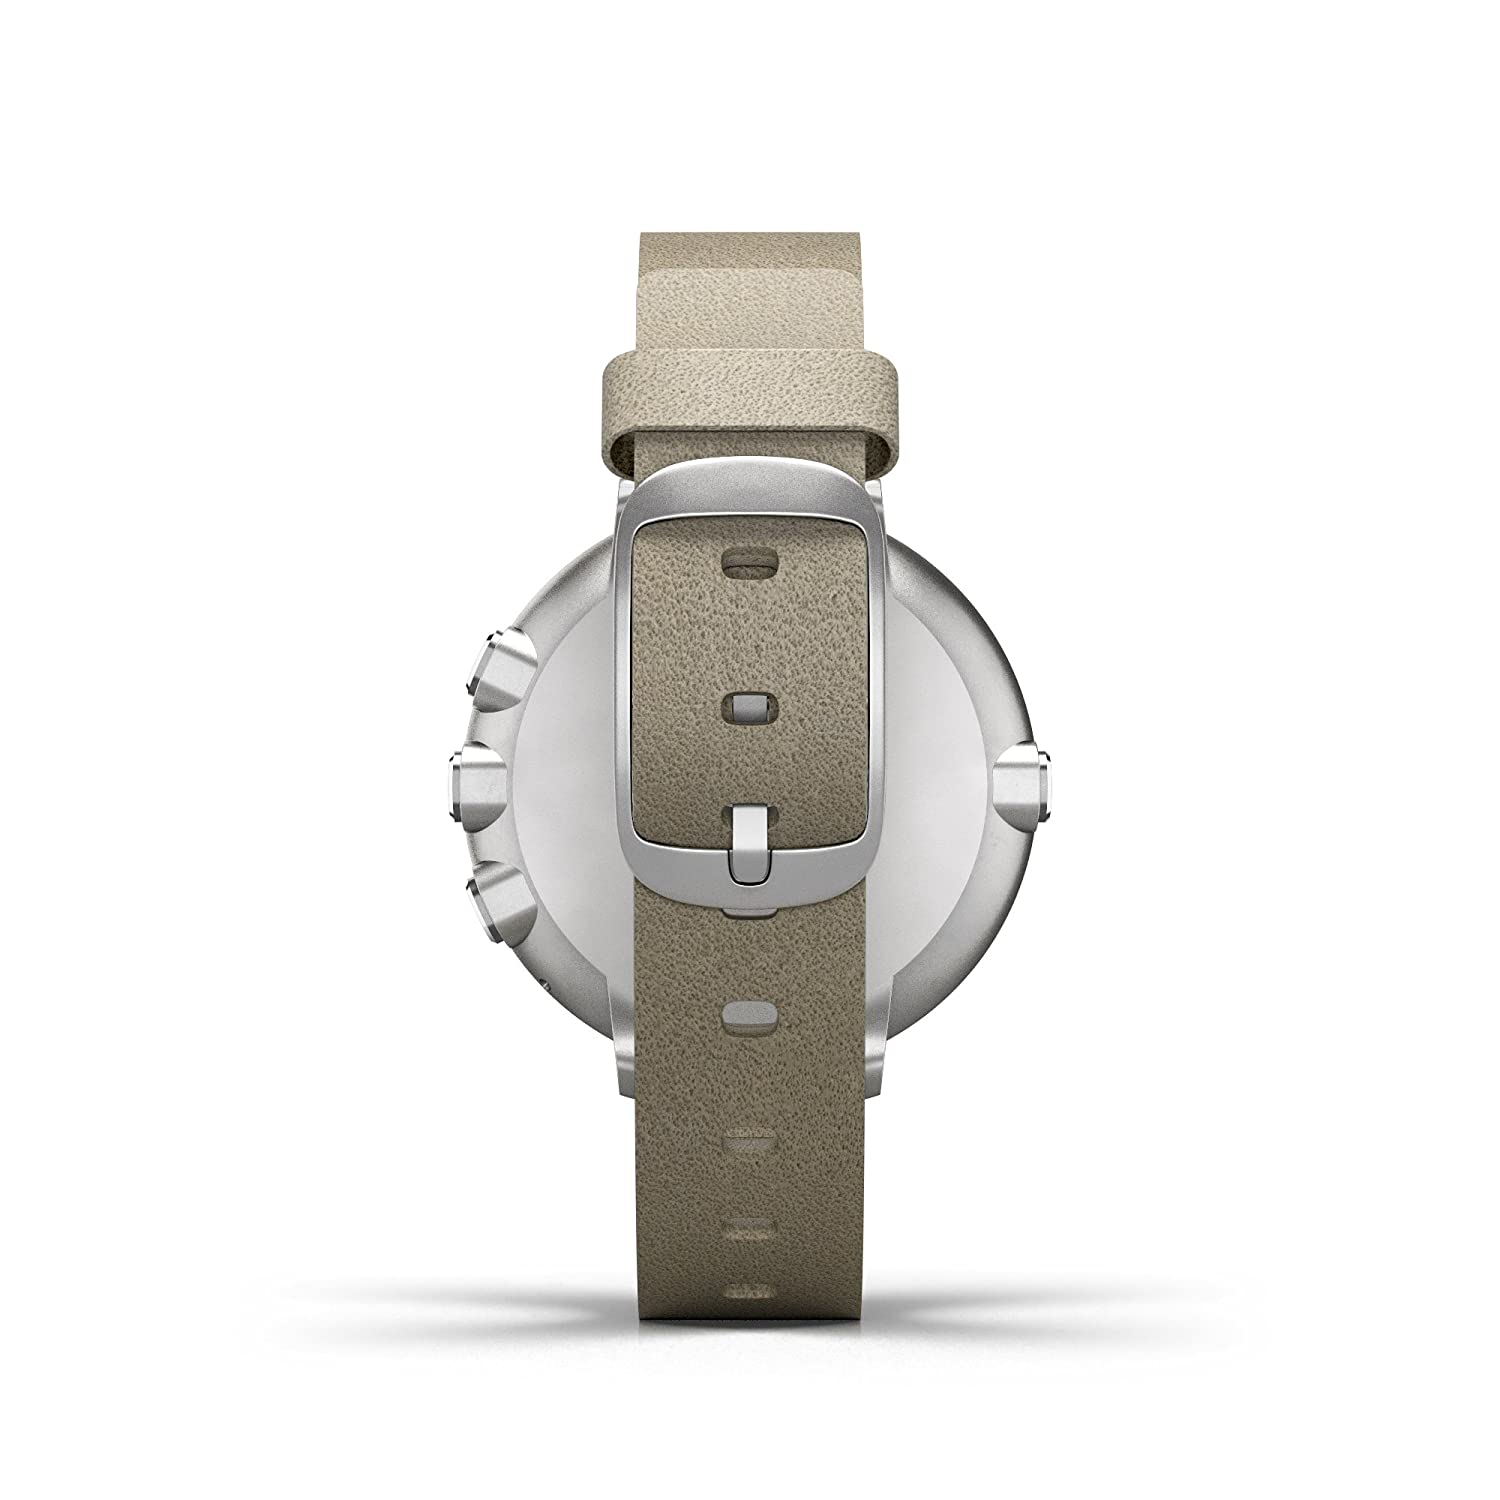 Amazon.com: Pebble Time Round 14mm Activity and Fitness ...